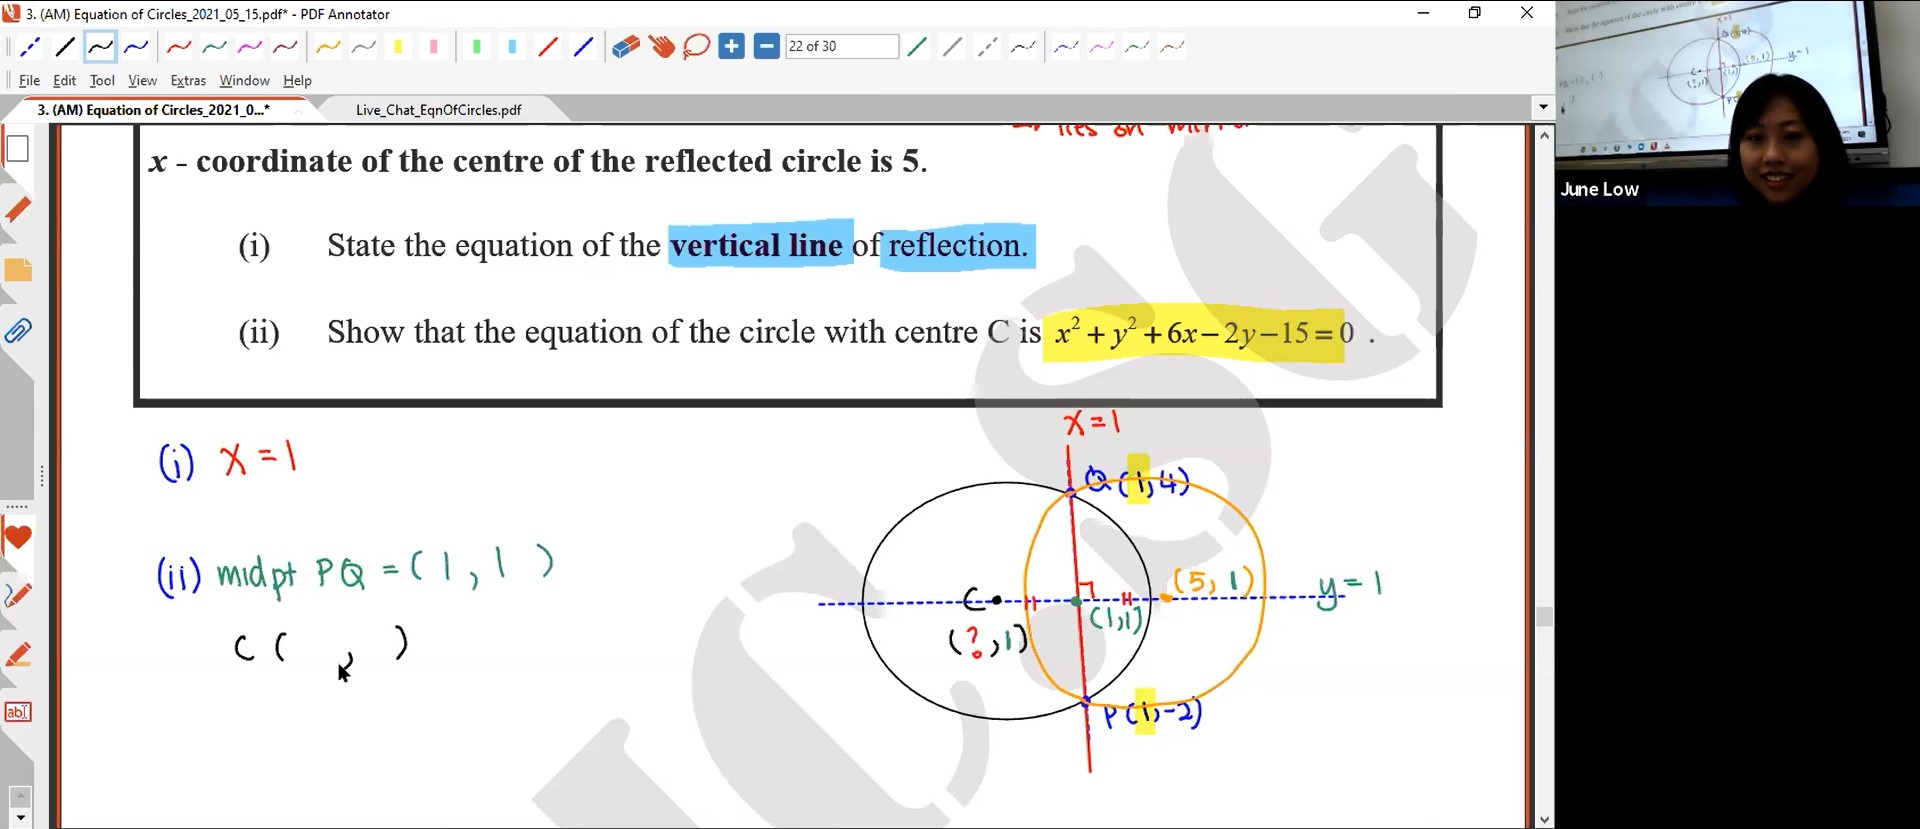 23. (AM) Equation of Circles Lesson 2